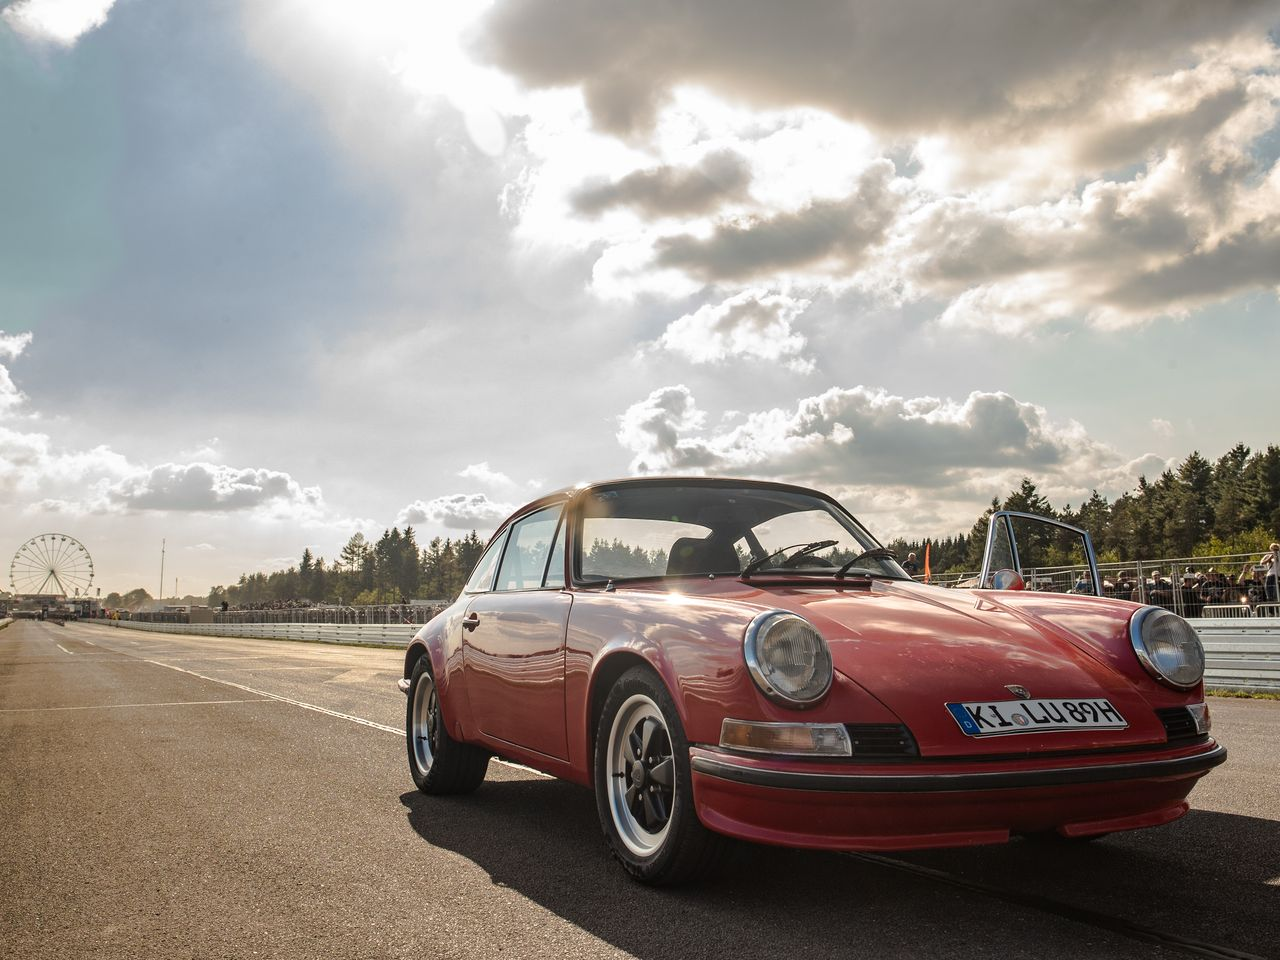 Holgi contests the 2018 rematch in the same 1968 Porsche 911—equipped with ...